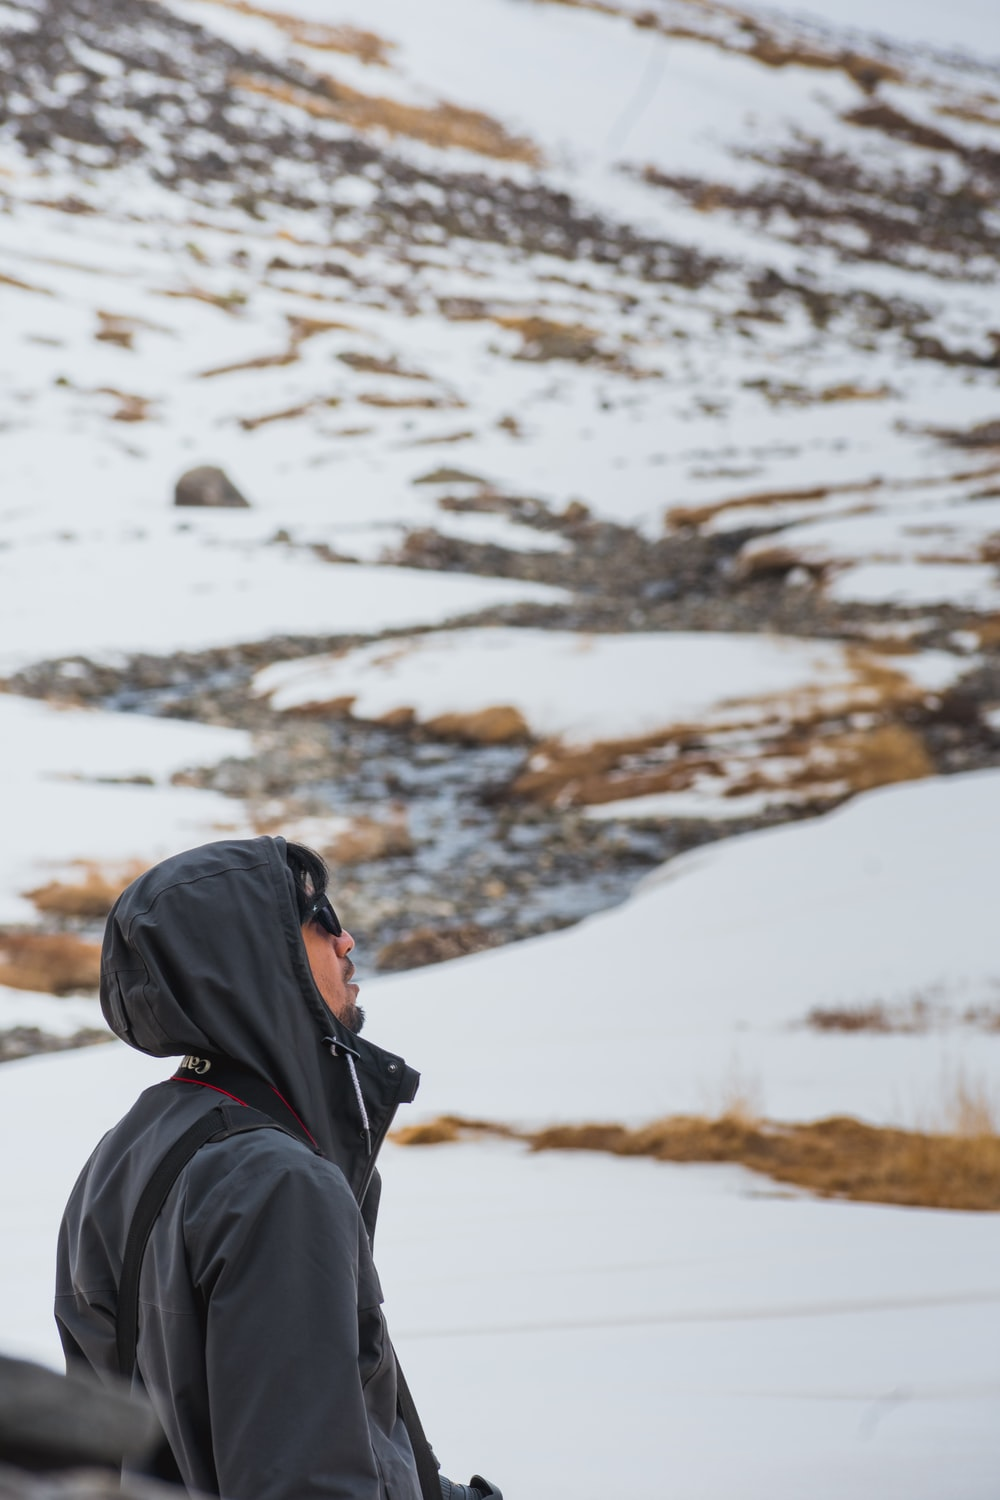 person in black hoodie standing on snow covered ground during daytime